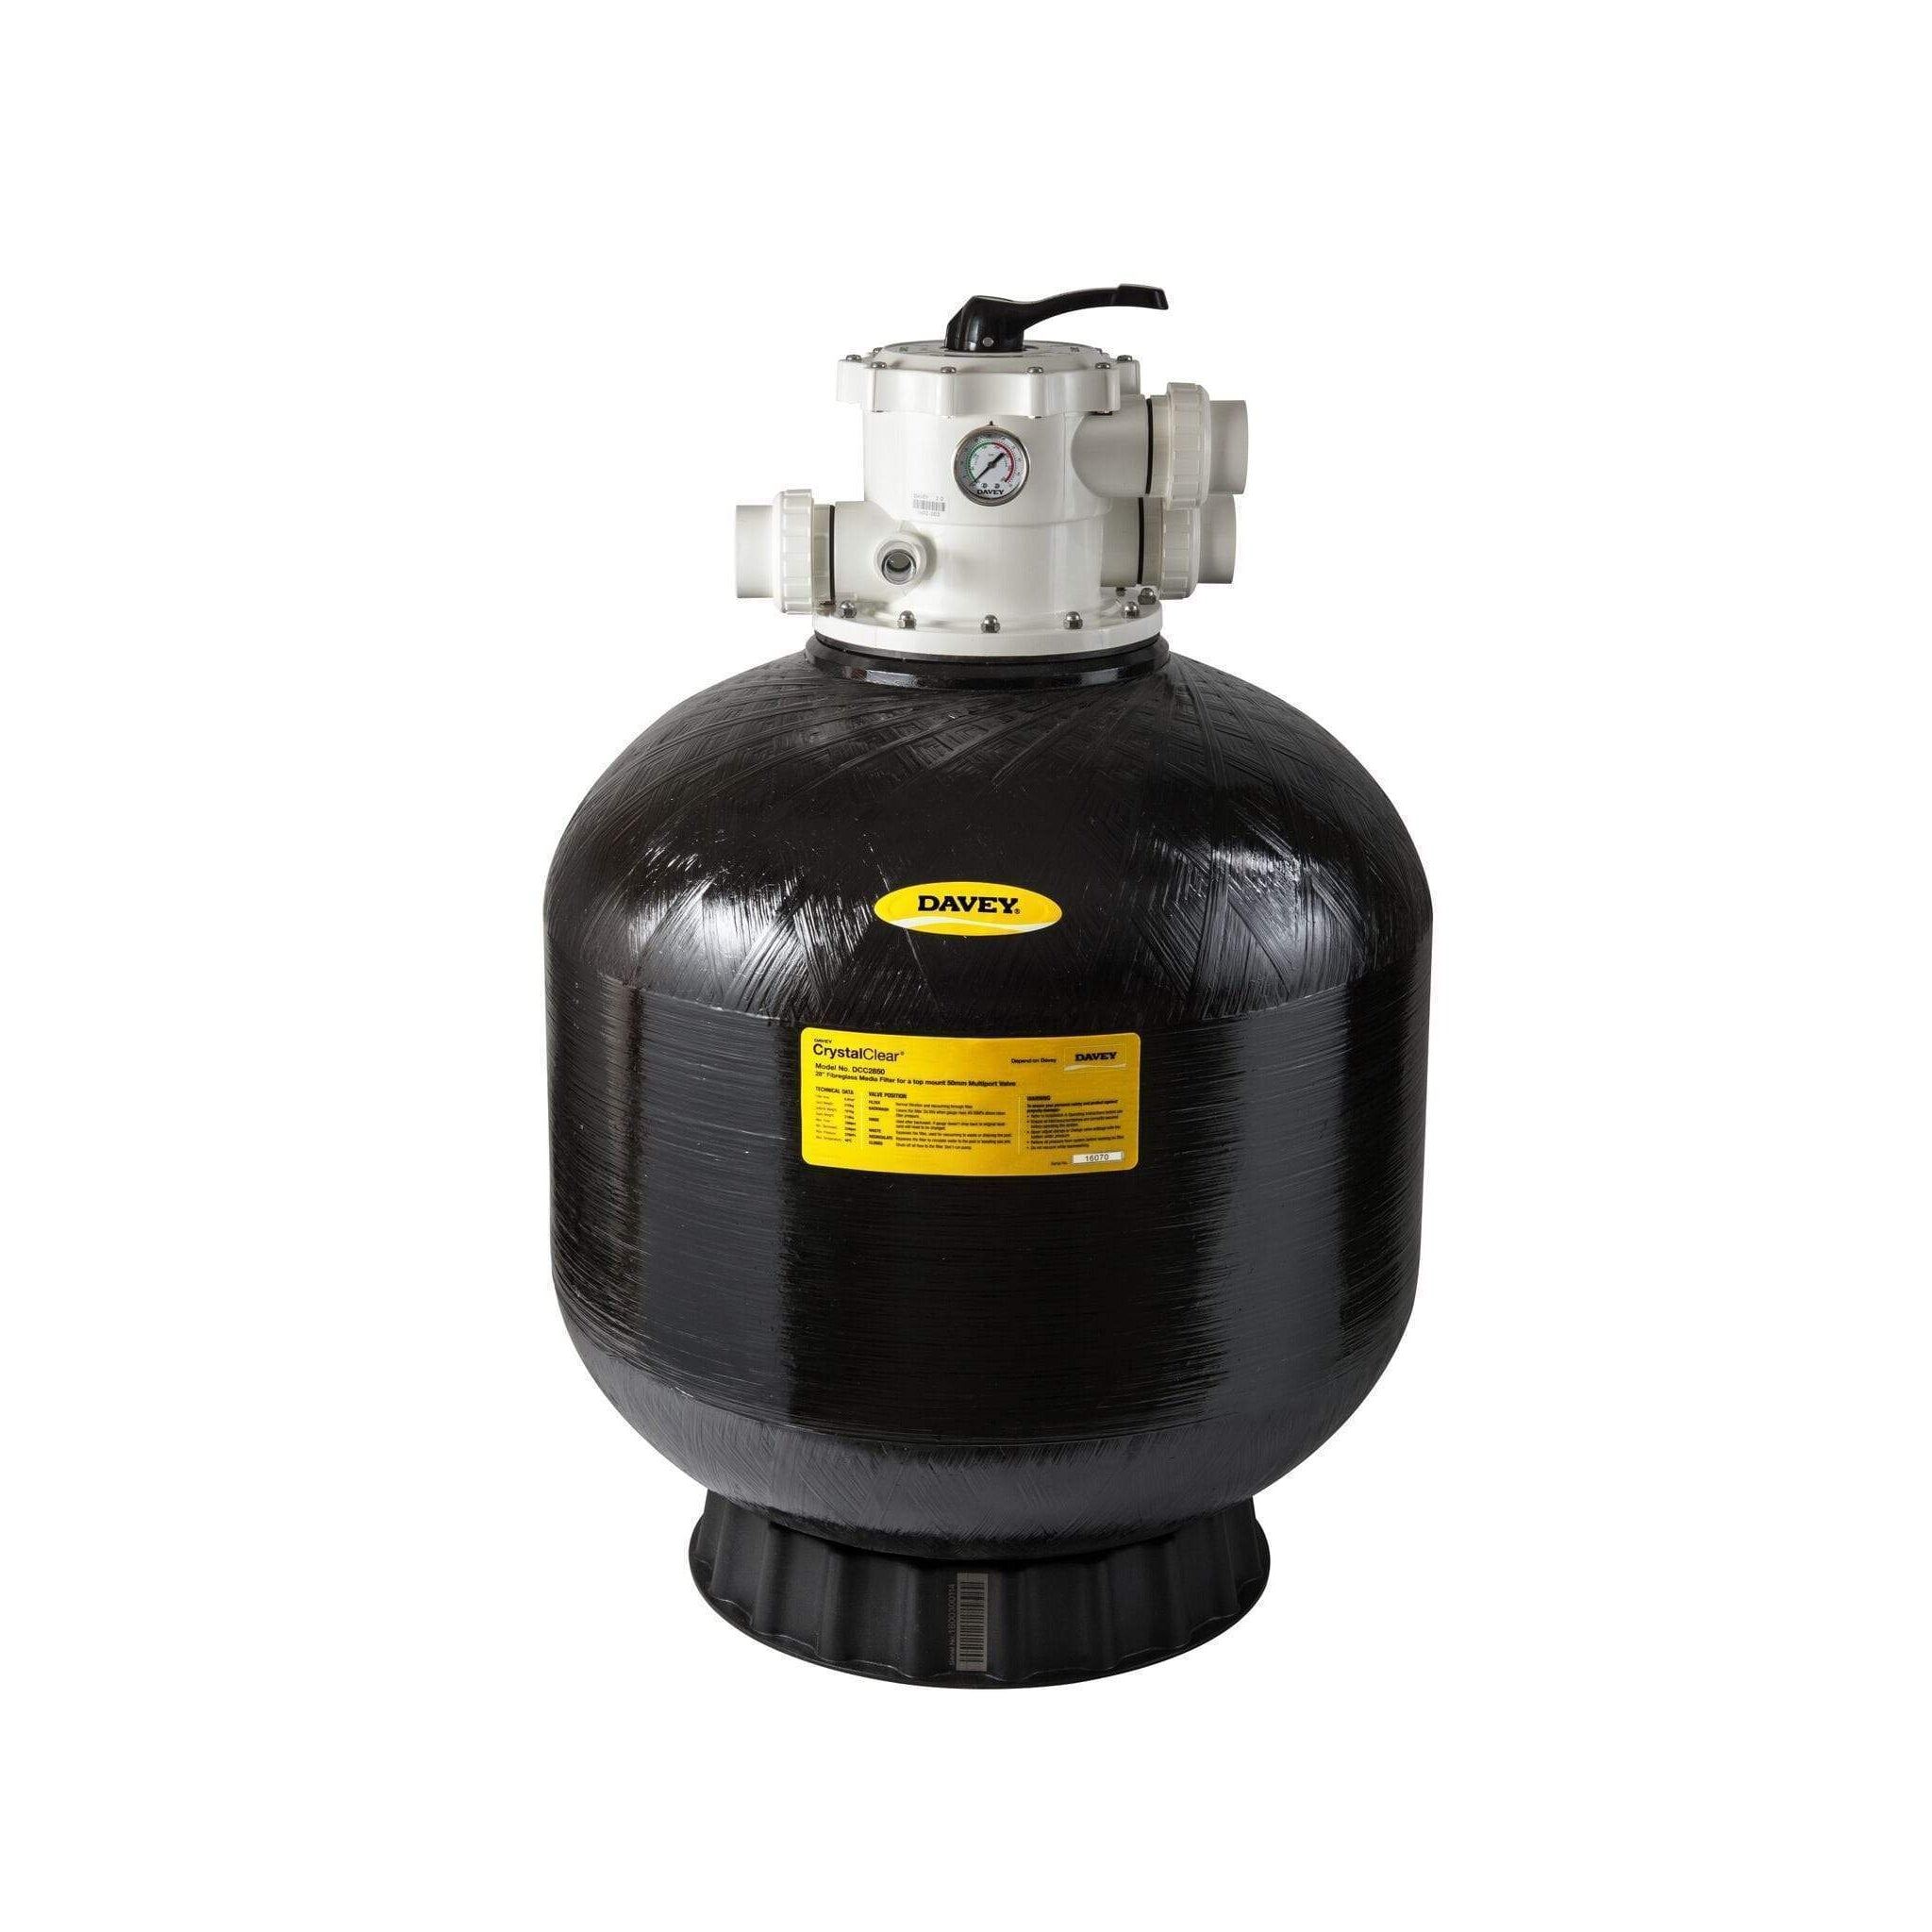 Davey Sand Filter Crystal Clear CCF 25inch 50mm-Mr Pool Man